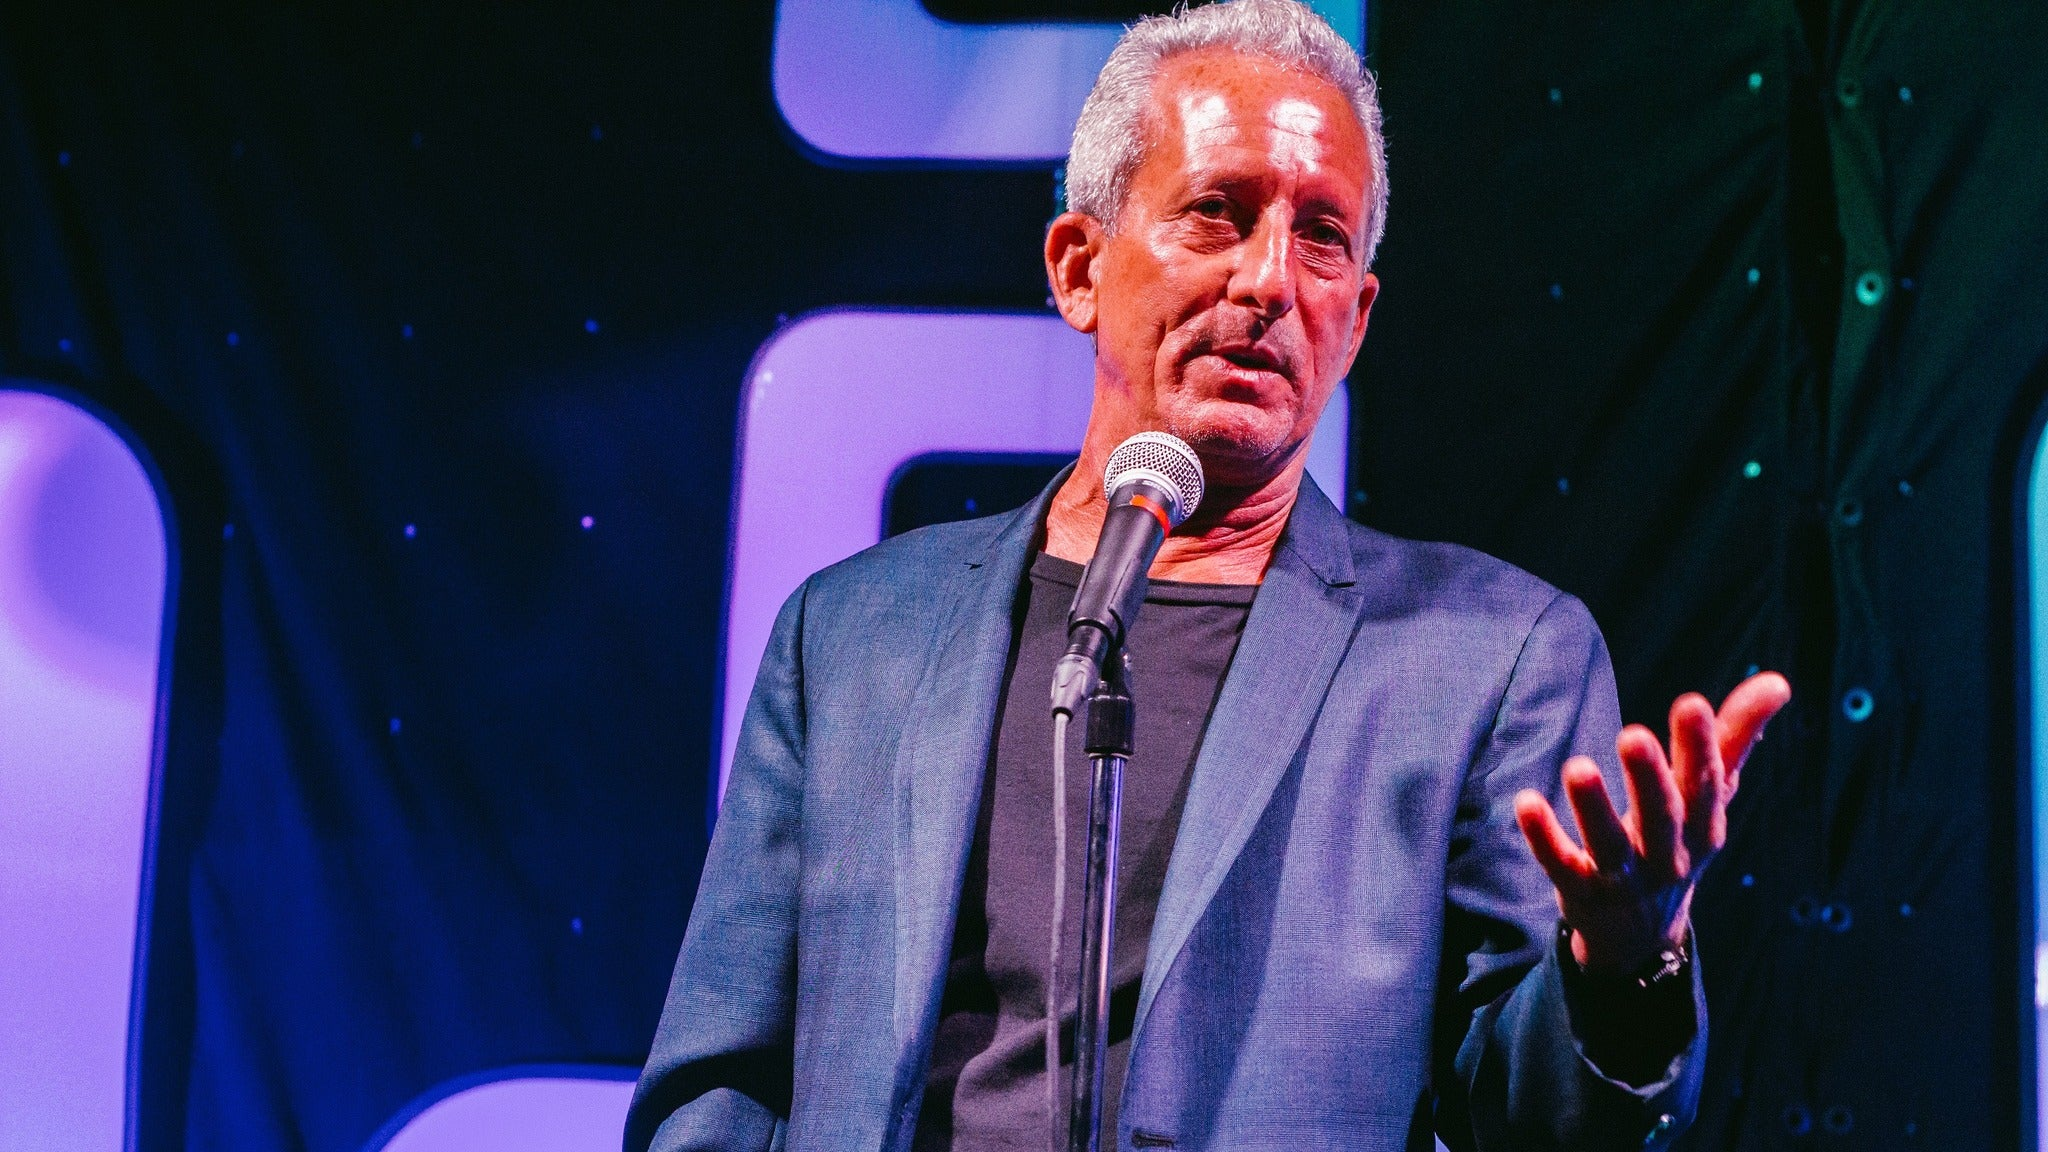 Bobby Slayton at Irvine Improv